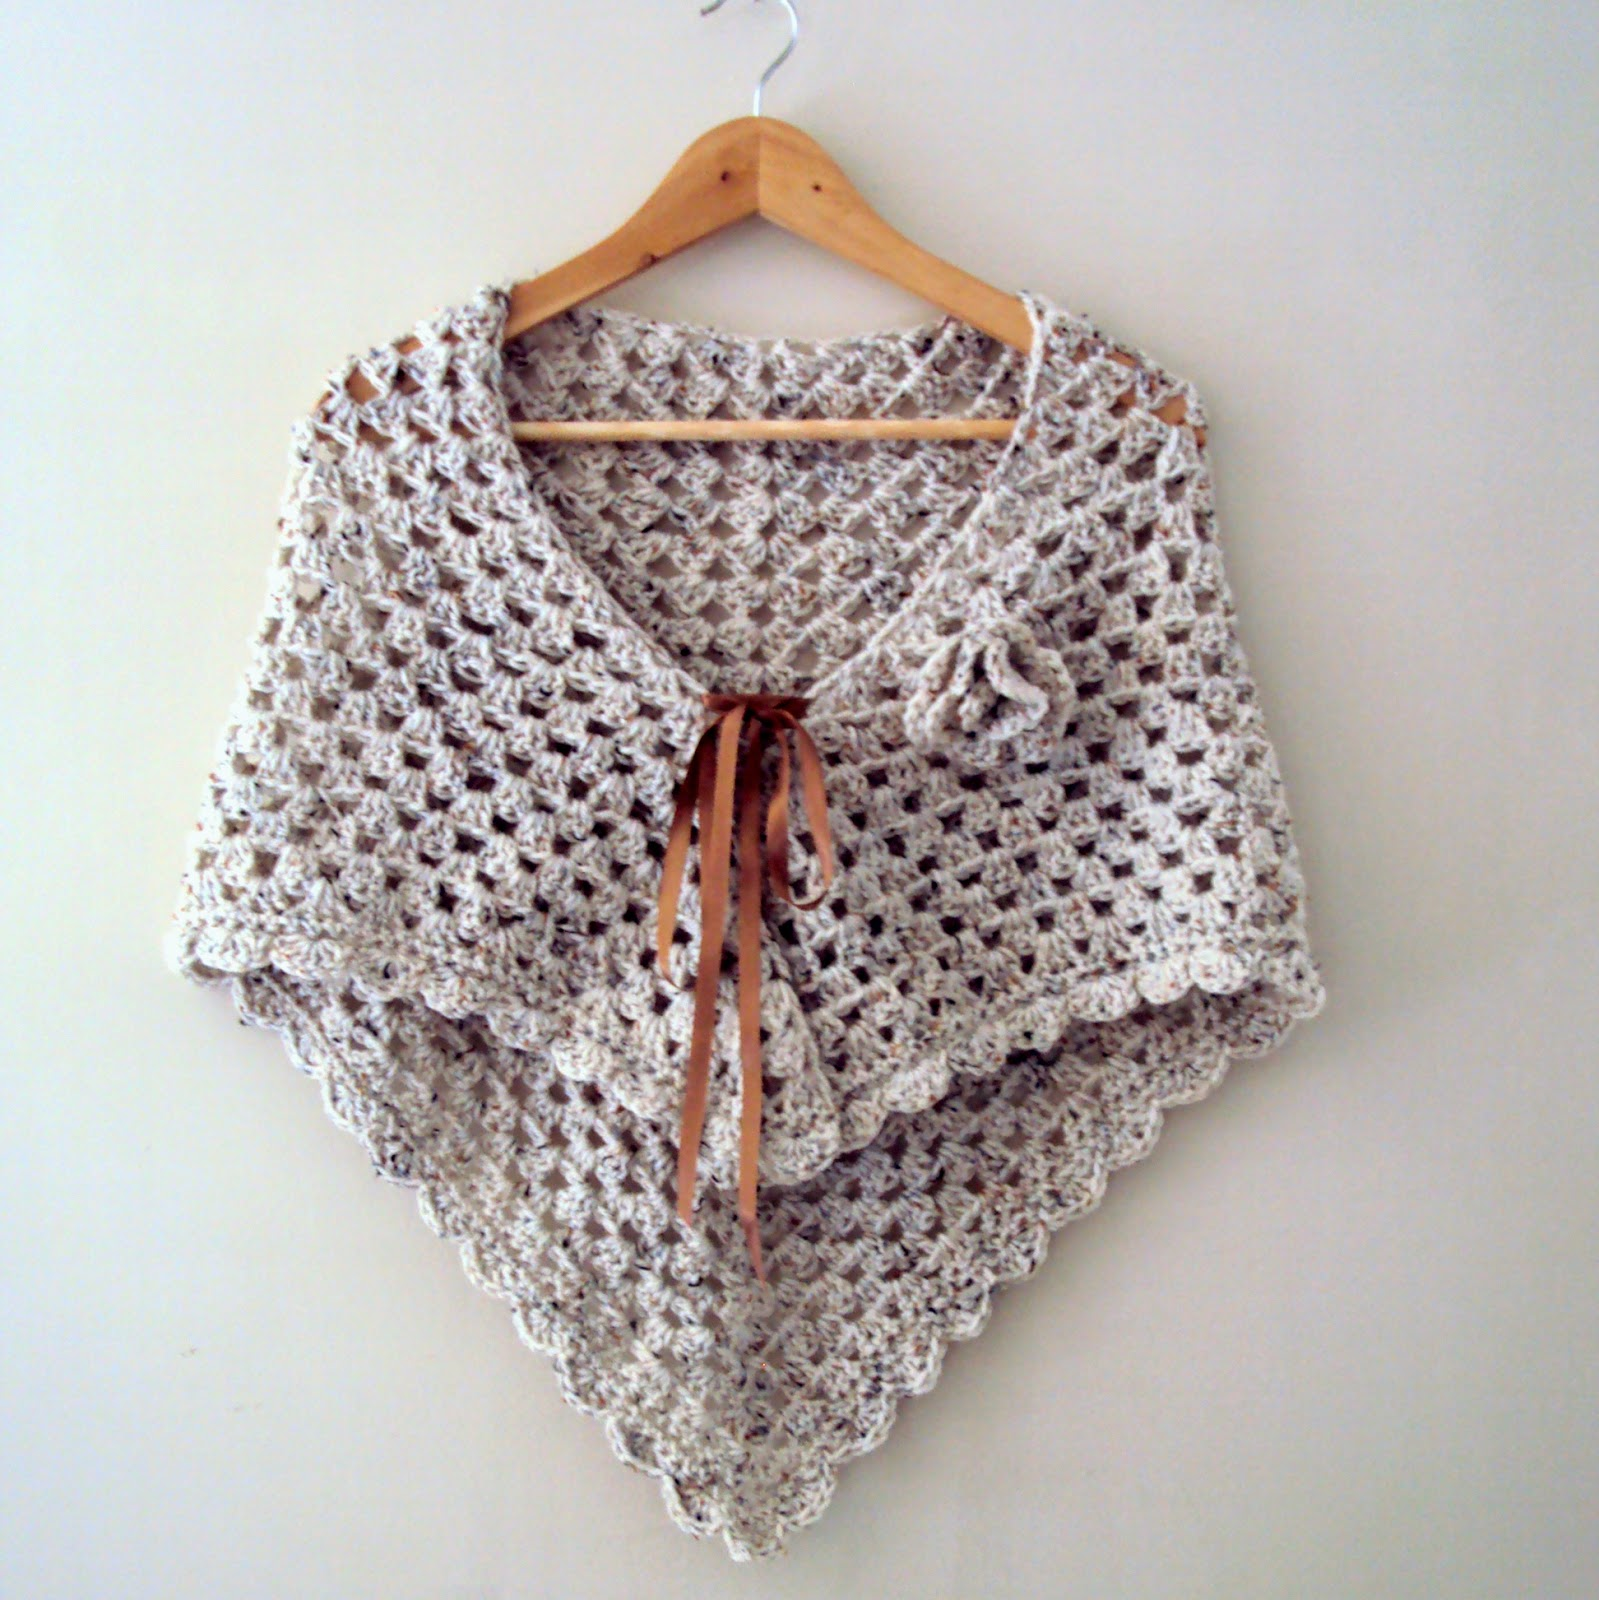 https://www.etsy.com/listing/227705436/crochet-shawl-shrug-bolero-capelet-scarf?ref=shop_home_feat_1